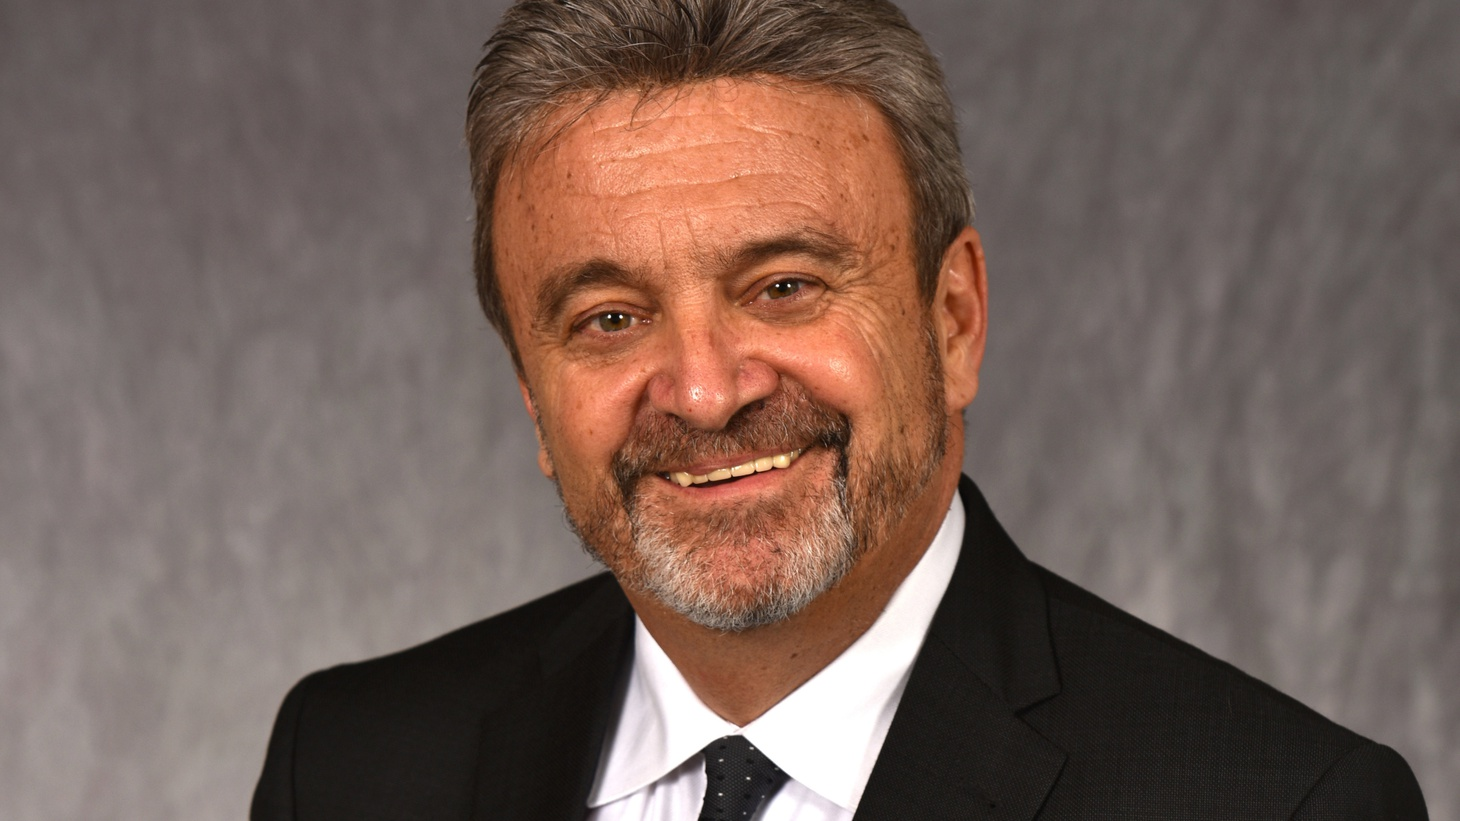 Ned Colletti talks about his life in baseball and time putting together one of baseball's best teams.